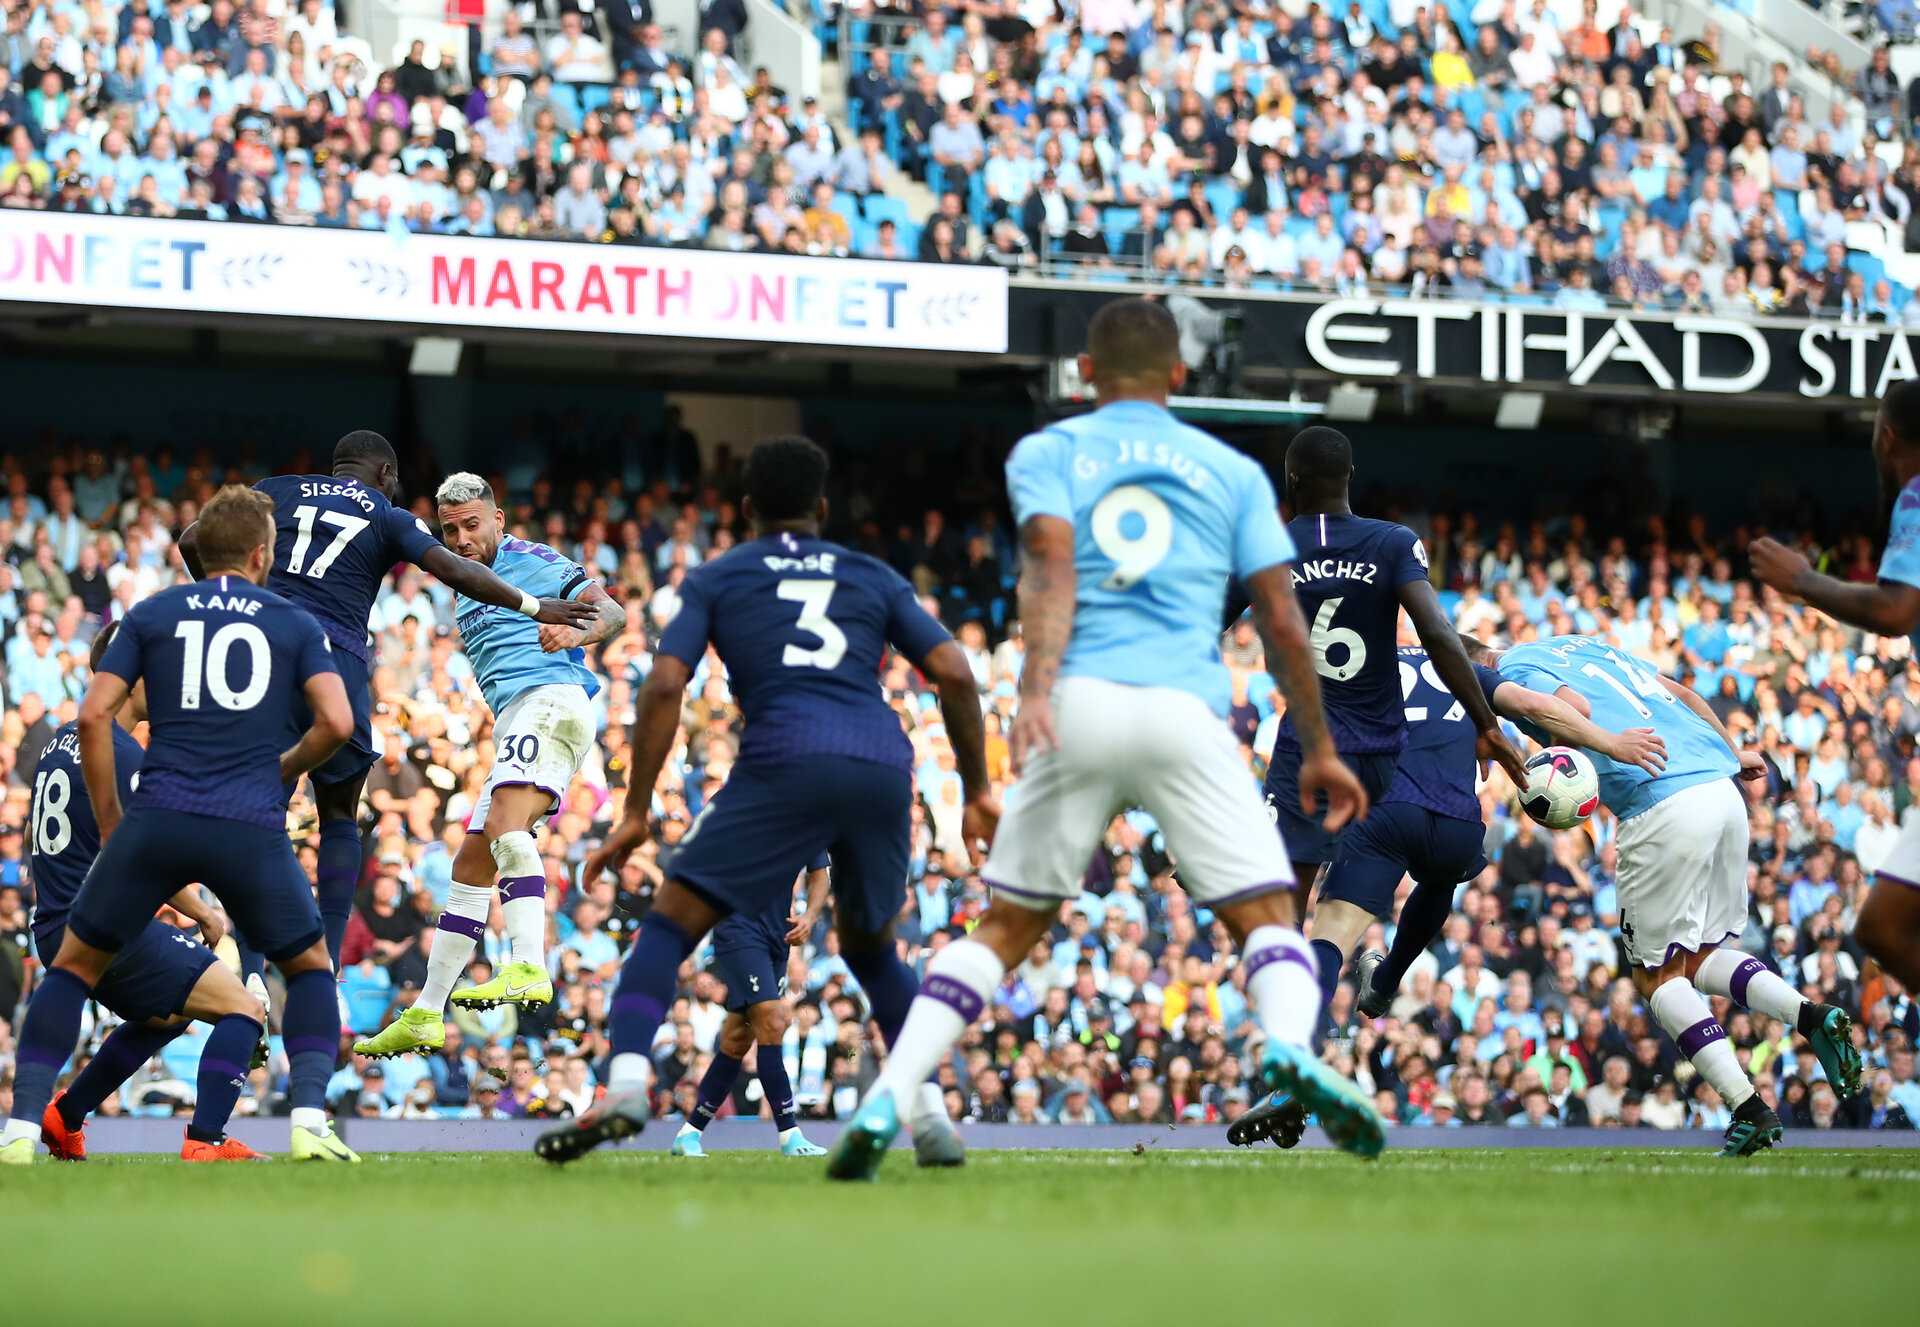 MANCHESTER, ENGLAND - AUGUST 17: Nicolas Otamendi (30) of Manchester City heads a ball on to the arm of team mate Aymeric Laporte (14) leading to Gabriel Jesus of Manchester City scoring his sides third goal which is later disallowed by VAR due to ball to arm during the Premier League match between Manchester City and Tottenham Hotspur at Etihad Stadium on August 17, 2019 in Manchester, United Kingdom. (Photo by Clive Brunskill/Getty Images)